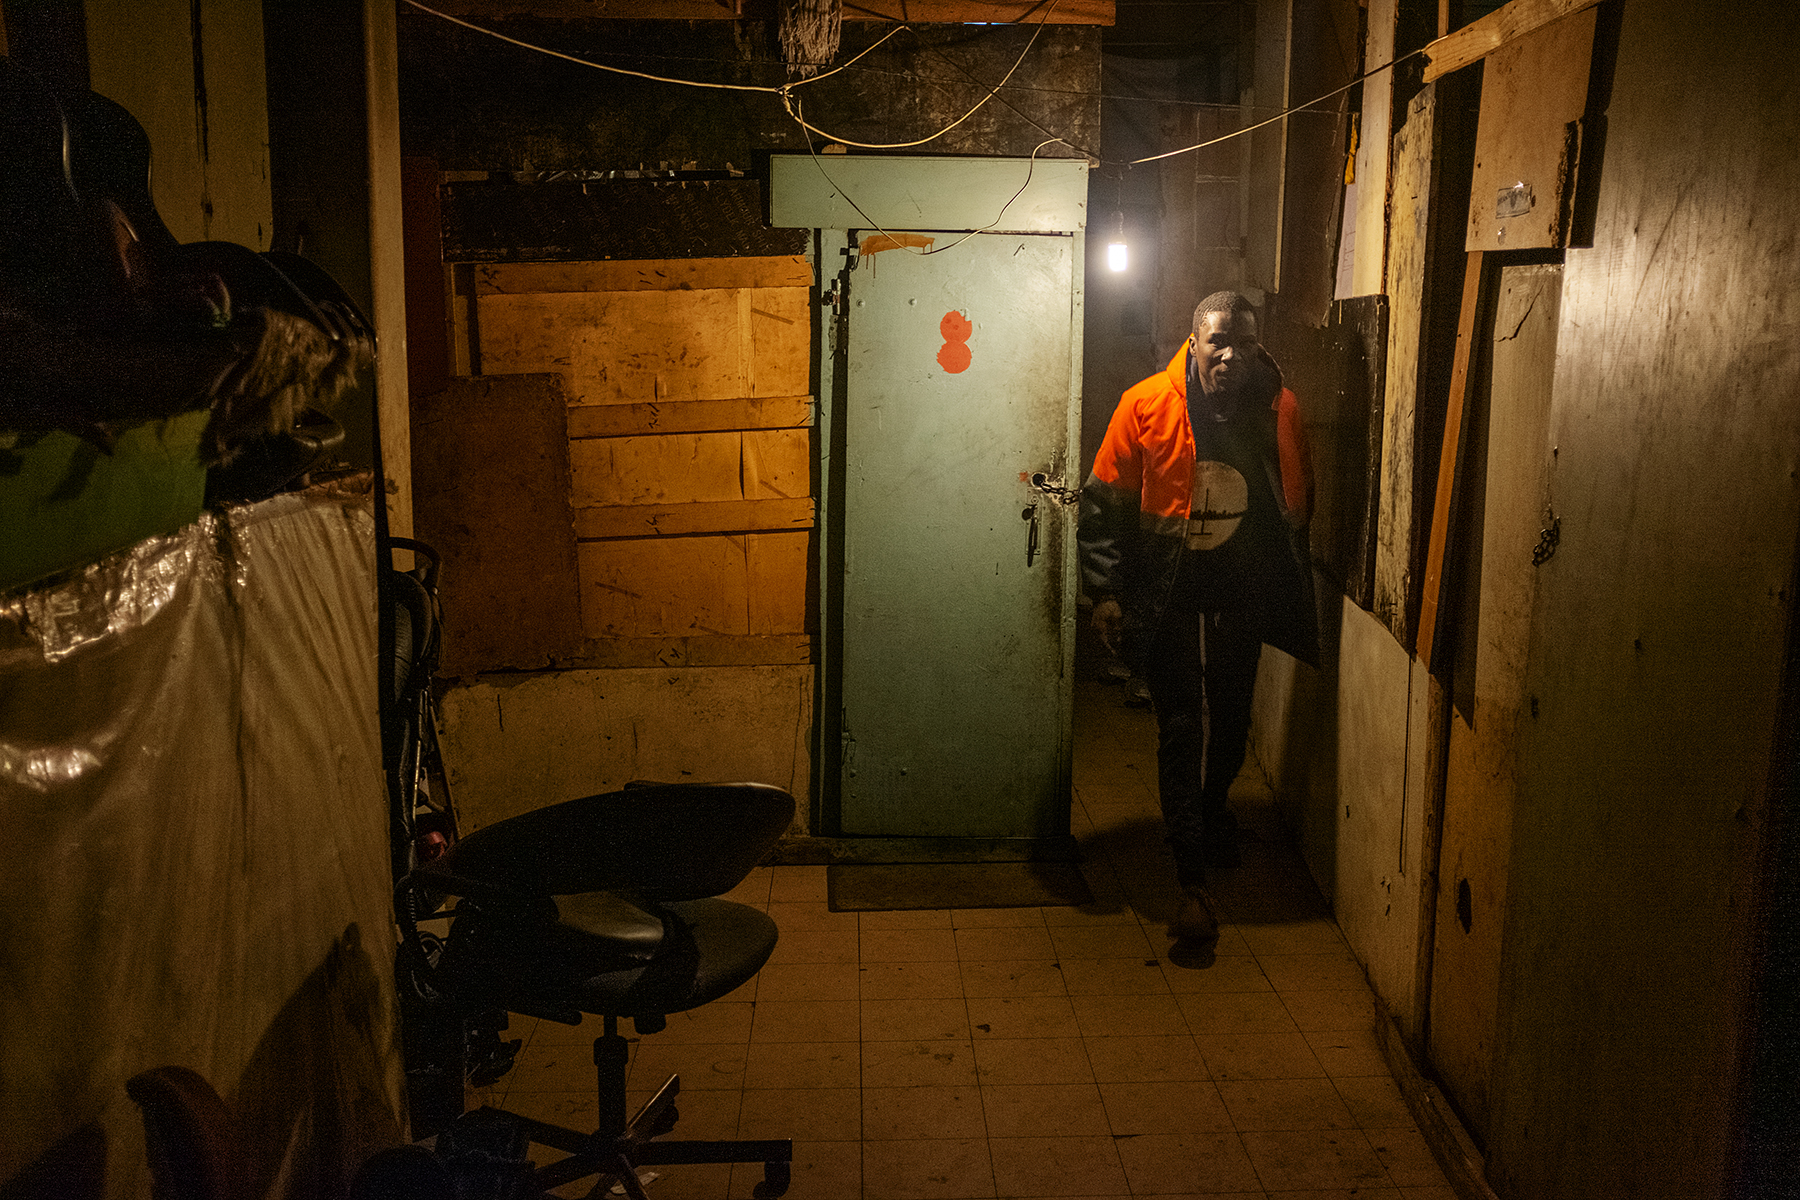 Scelo Sithole, 38, leaves his quarter at the Newtown hostel complex in the early morning of June 12, 2019, to start his day as an informal waste picker in Johannesburg, South Africa.